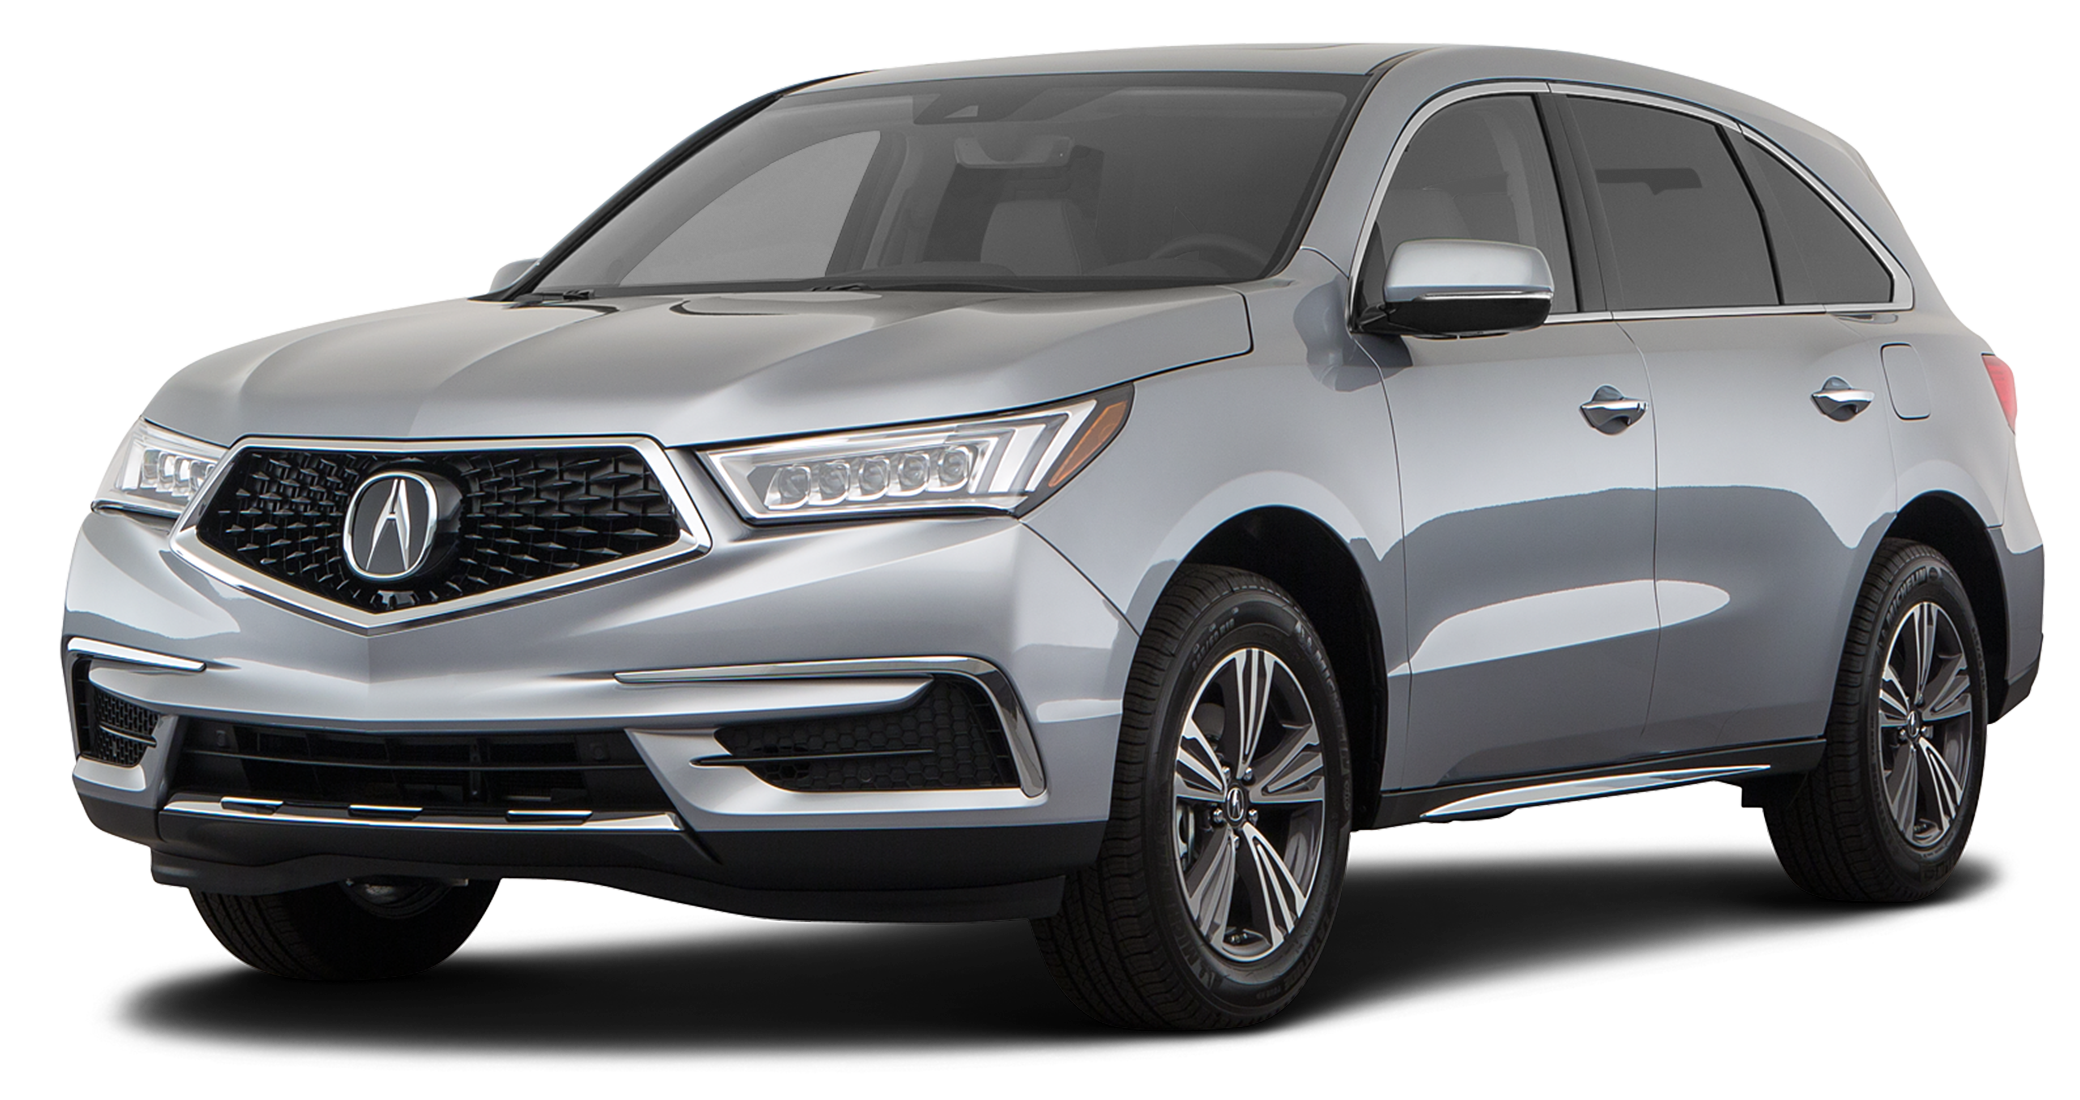 2020 Acura Mdx Incentives Specials Offers In Edmonton Ab